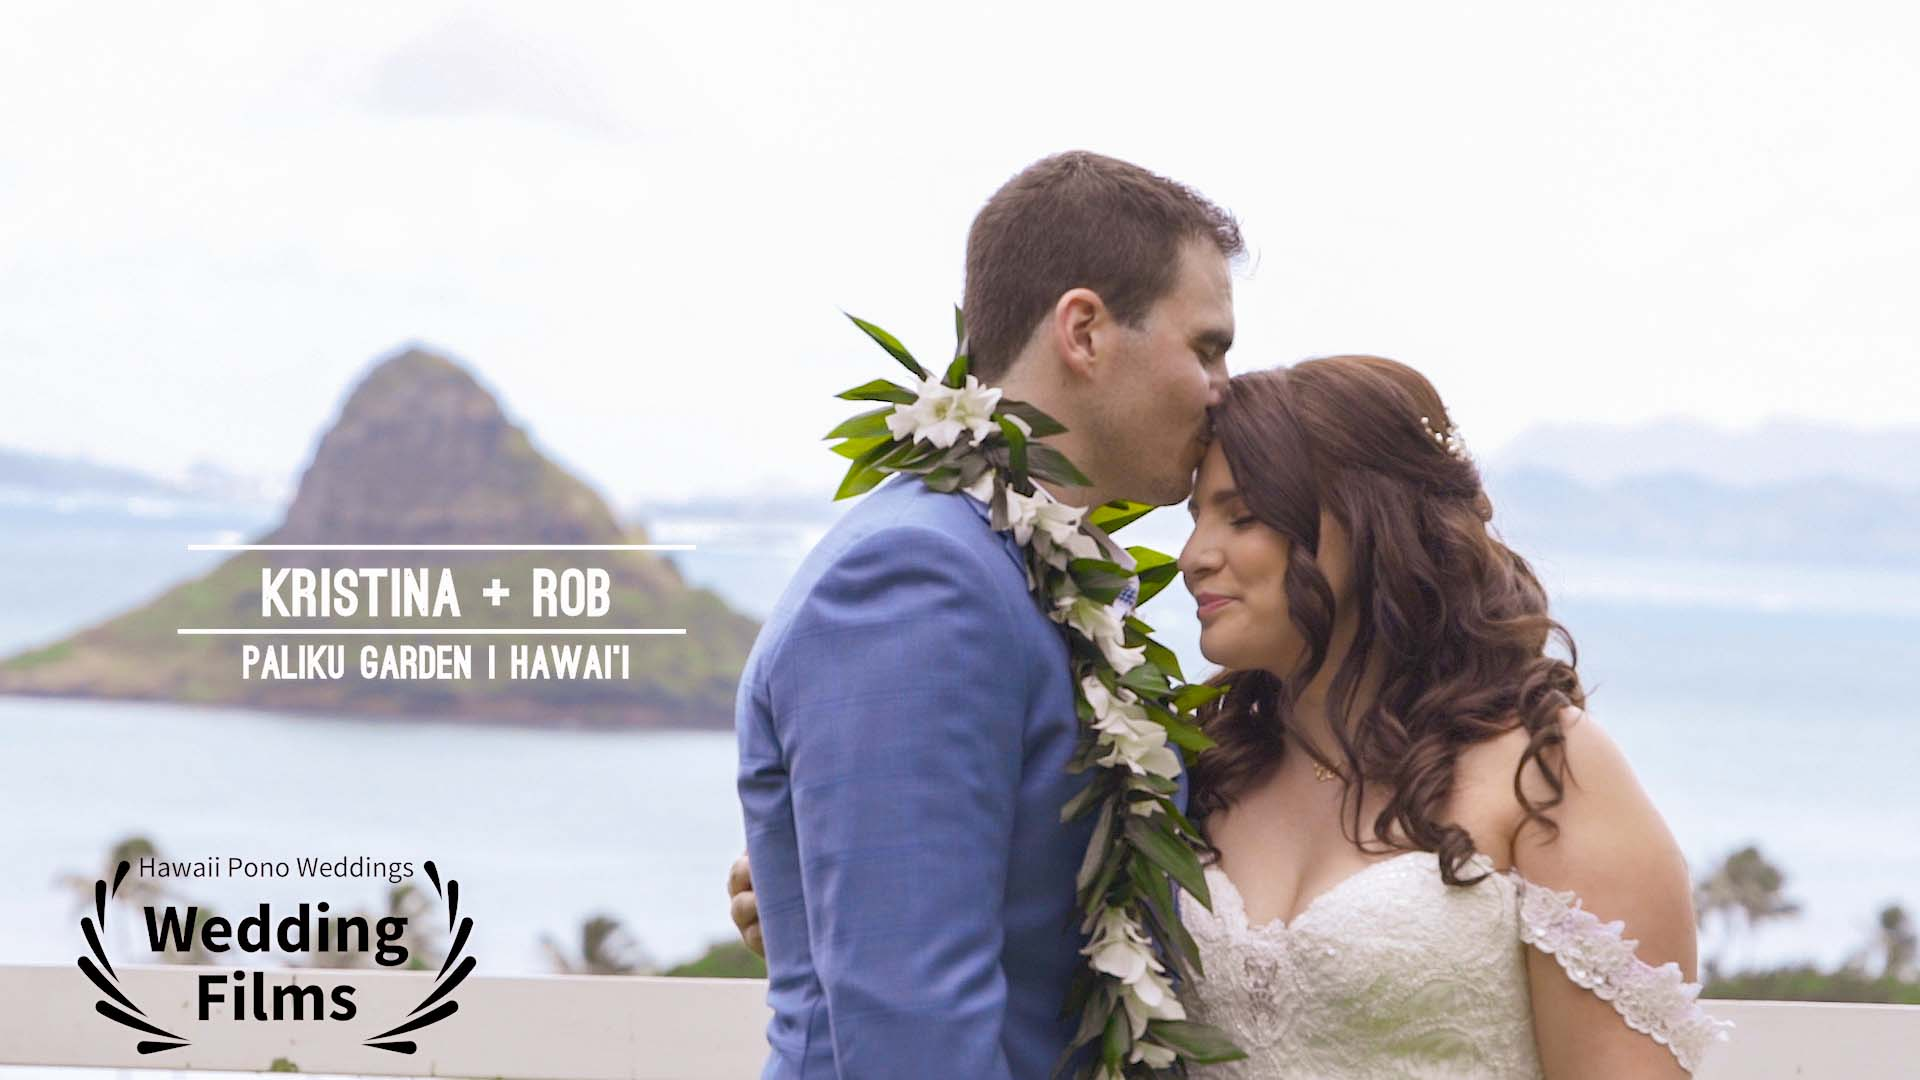 Kristina  + Rob | Kaneohe, Hawaii | Paliku Gardens at Kualoa Ranch